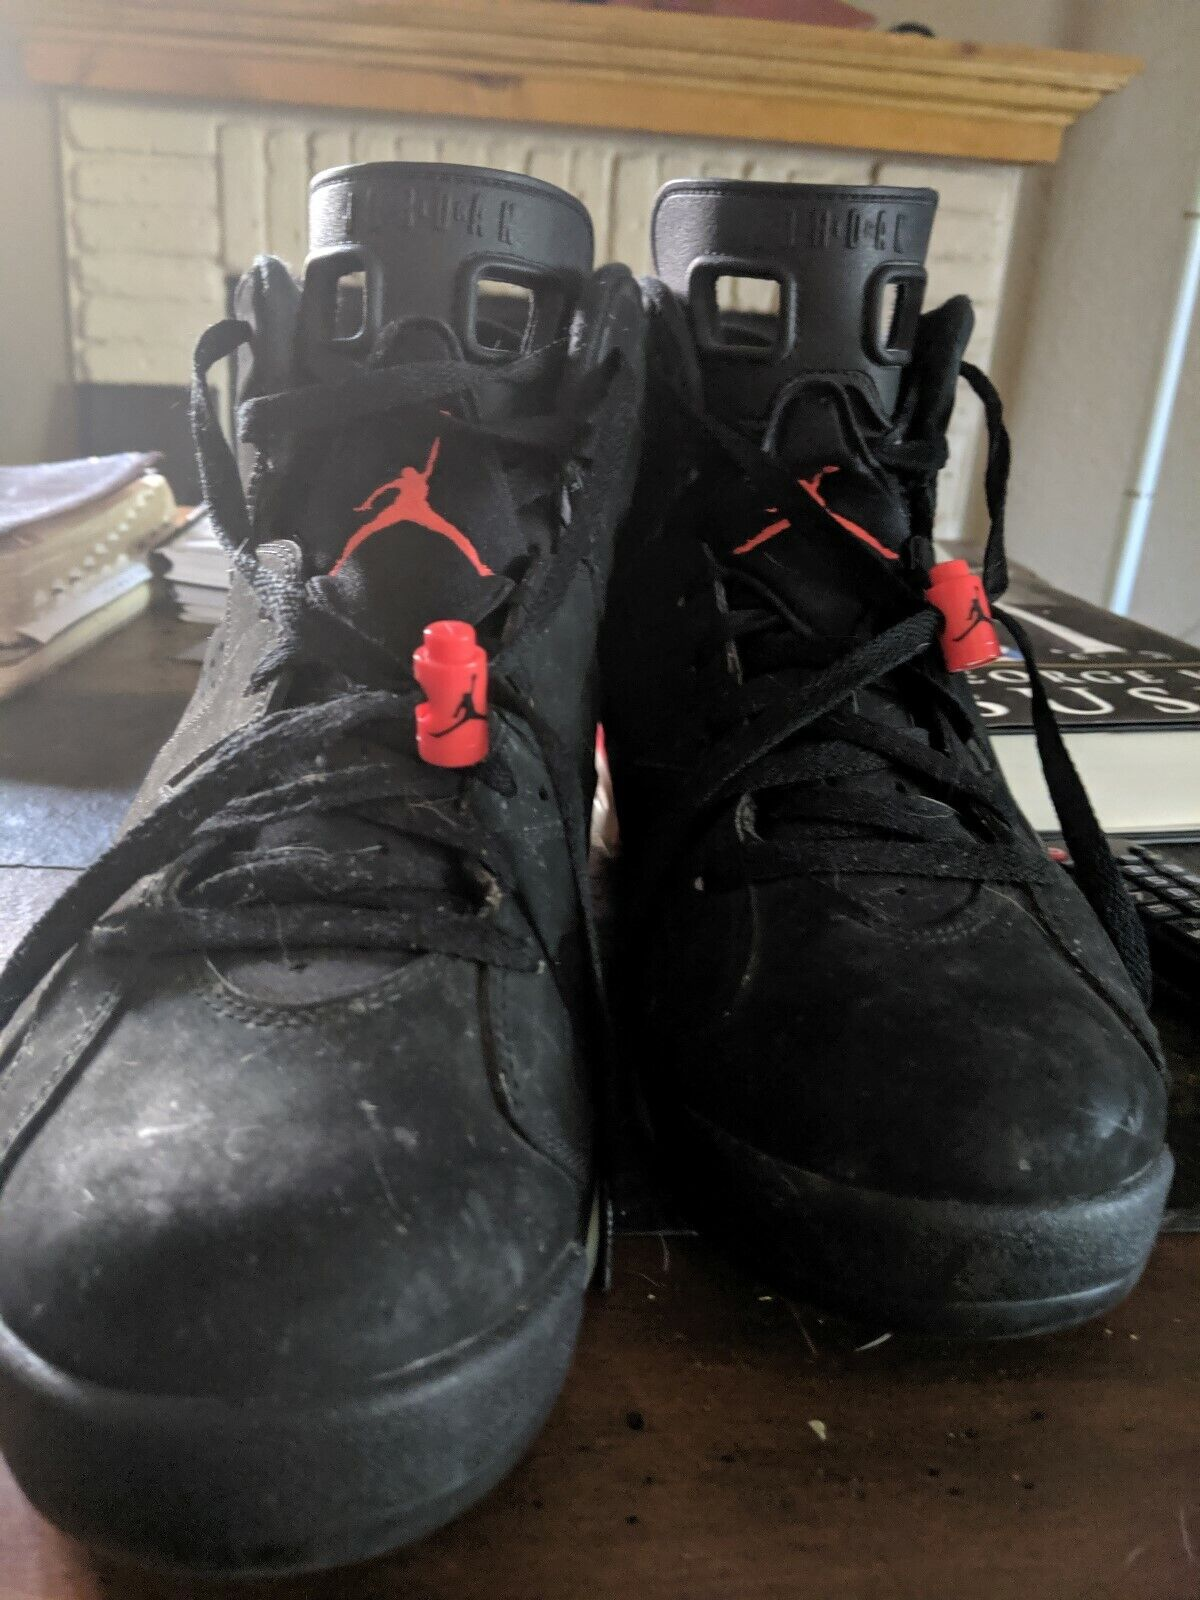 size 12 Jordan VI 6 Olympic Team stealth black well taken care of; original box